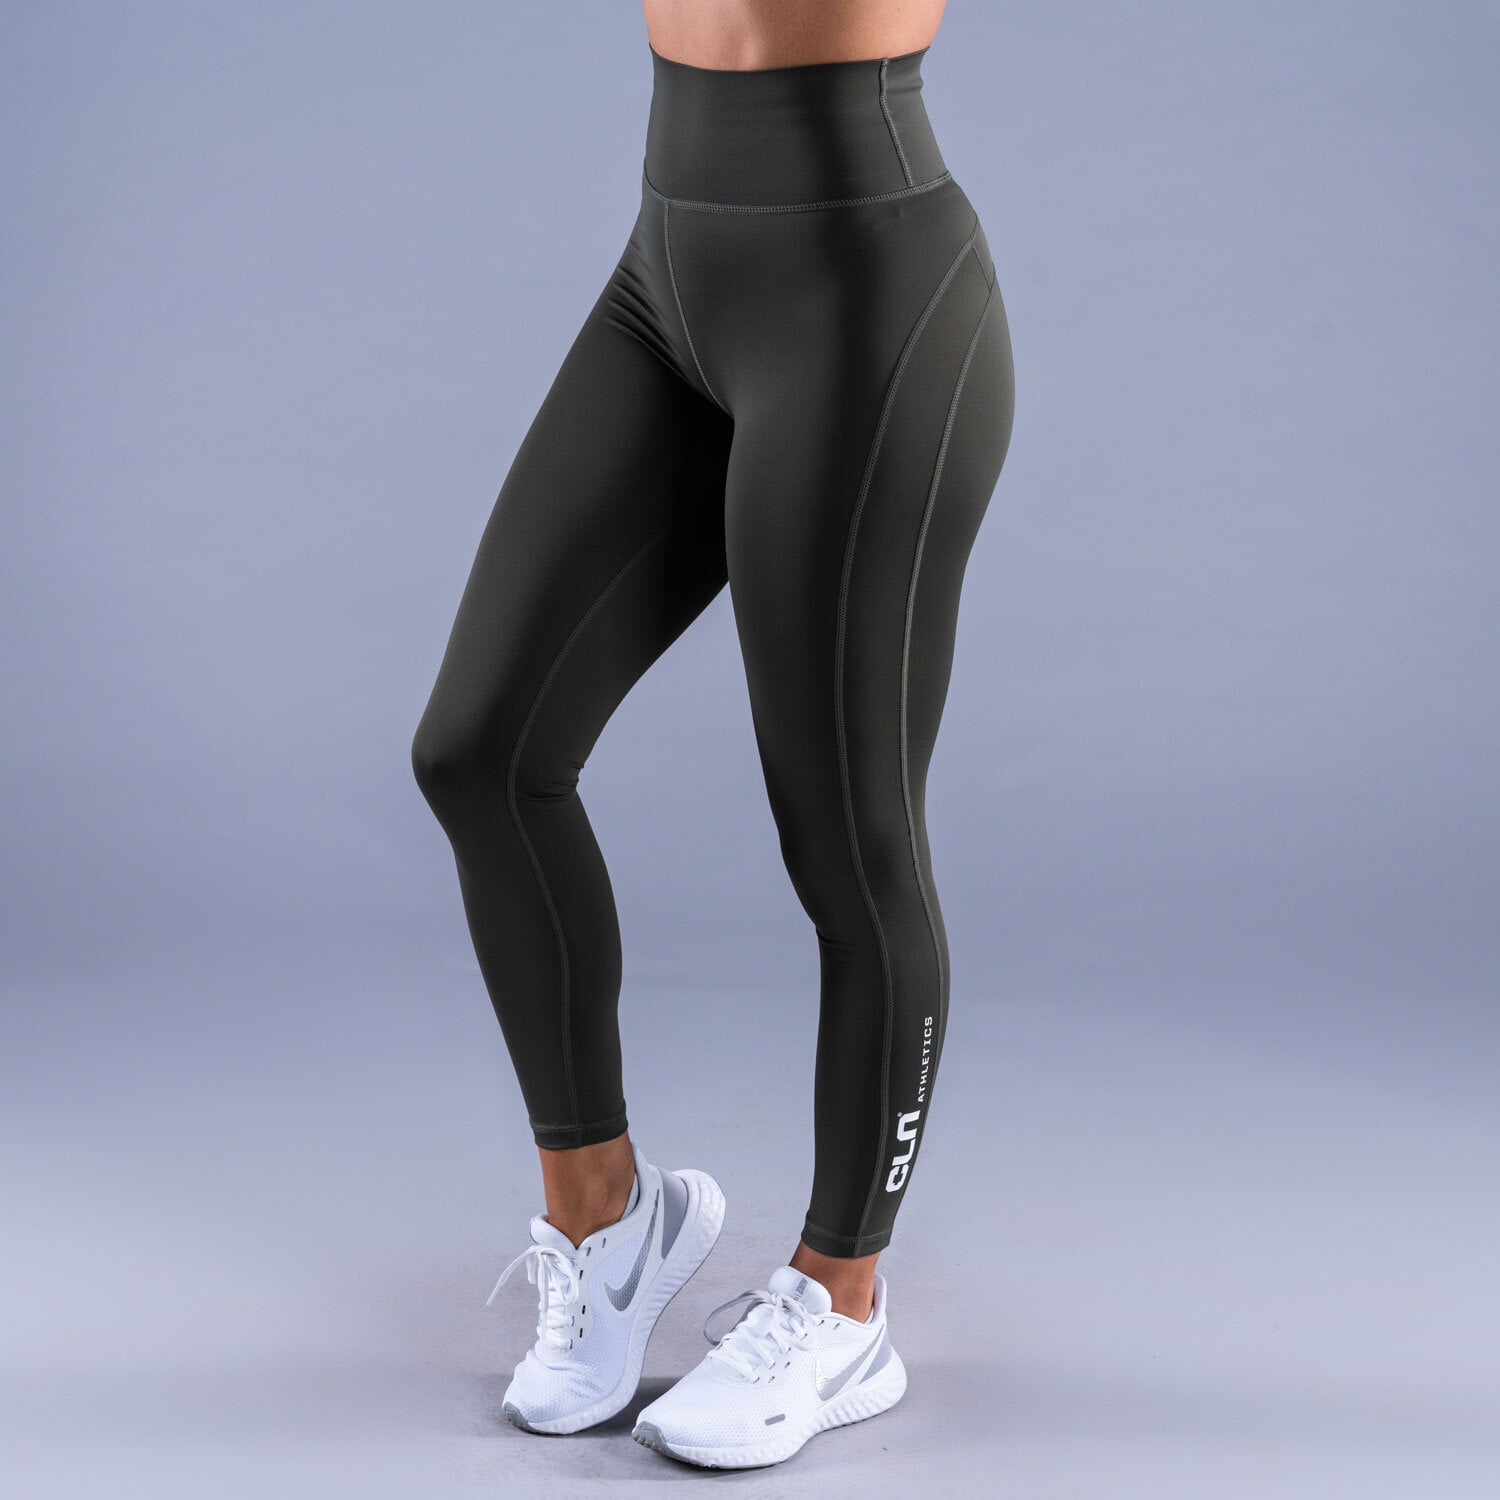 CLN Vitality ws tights Forest green